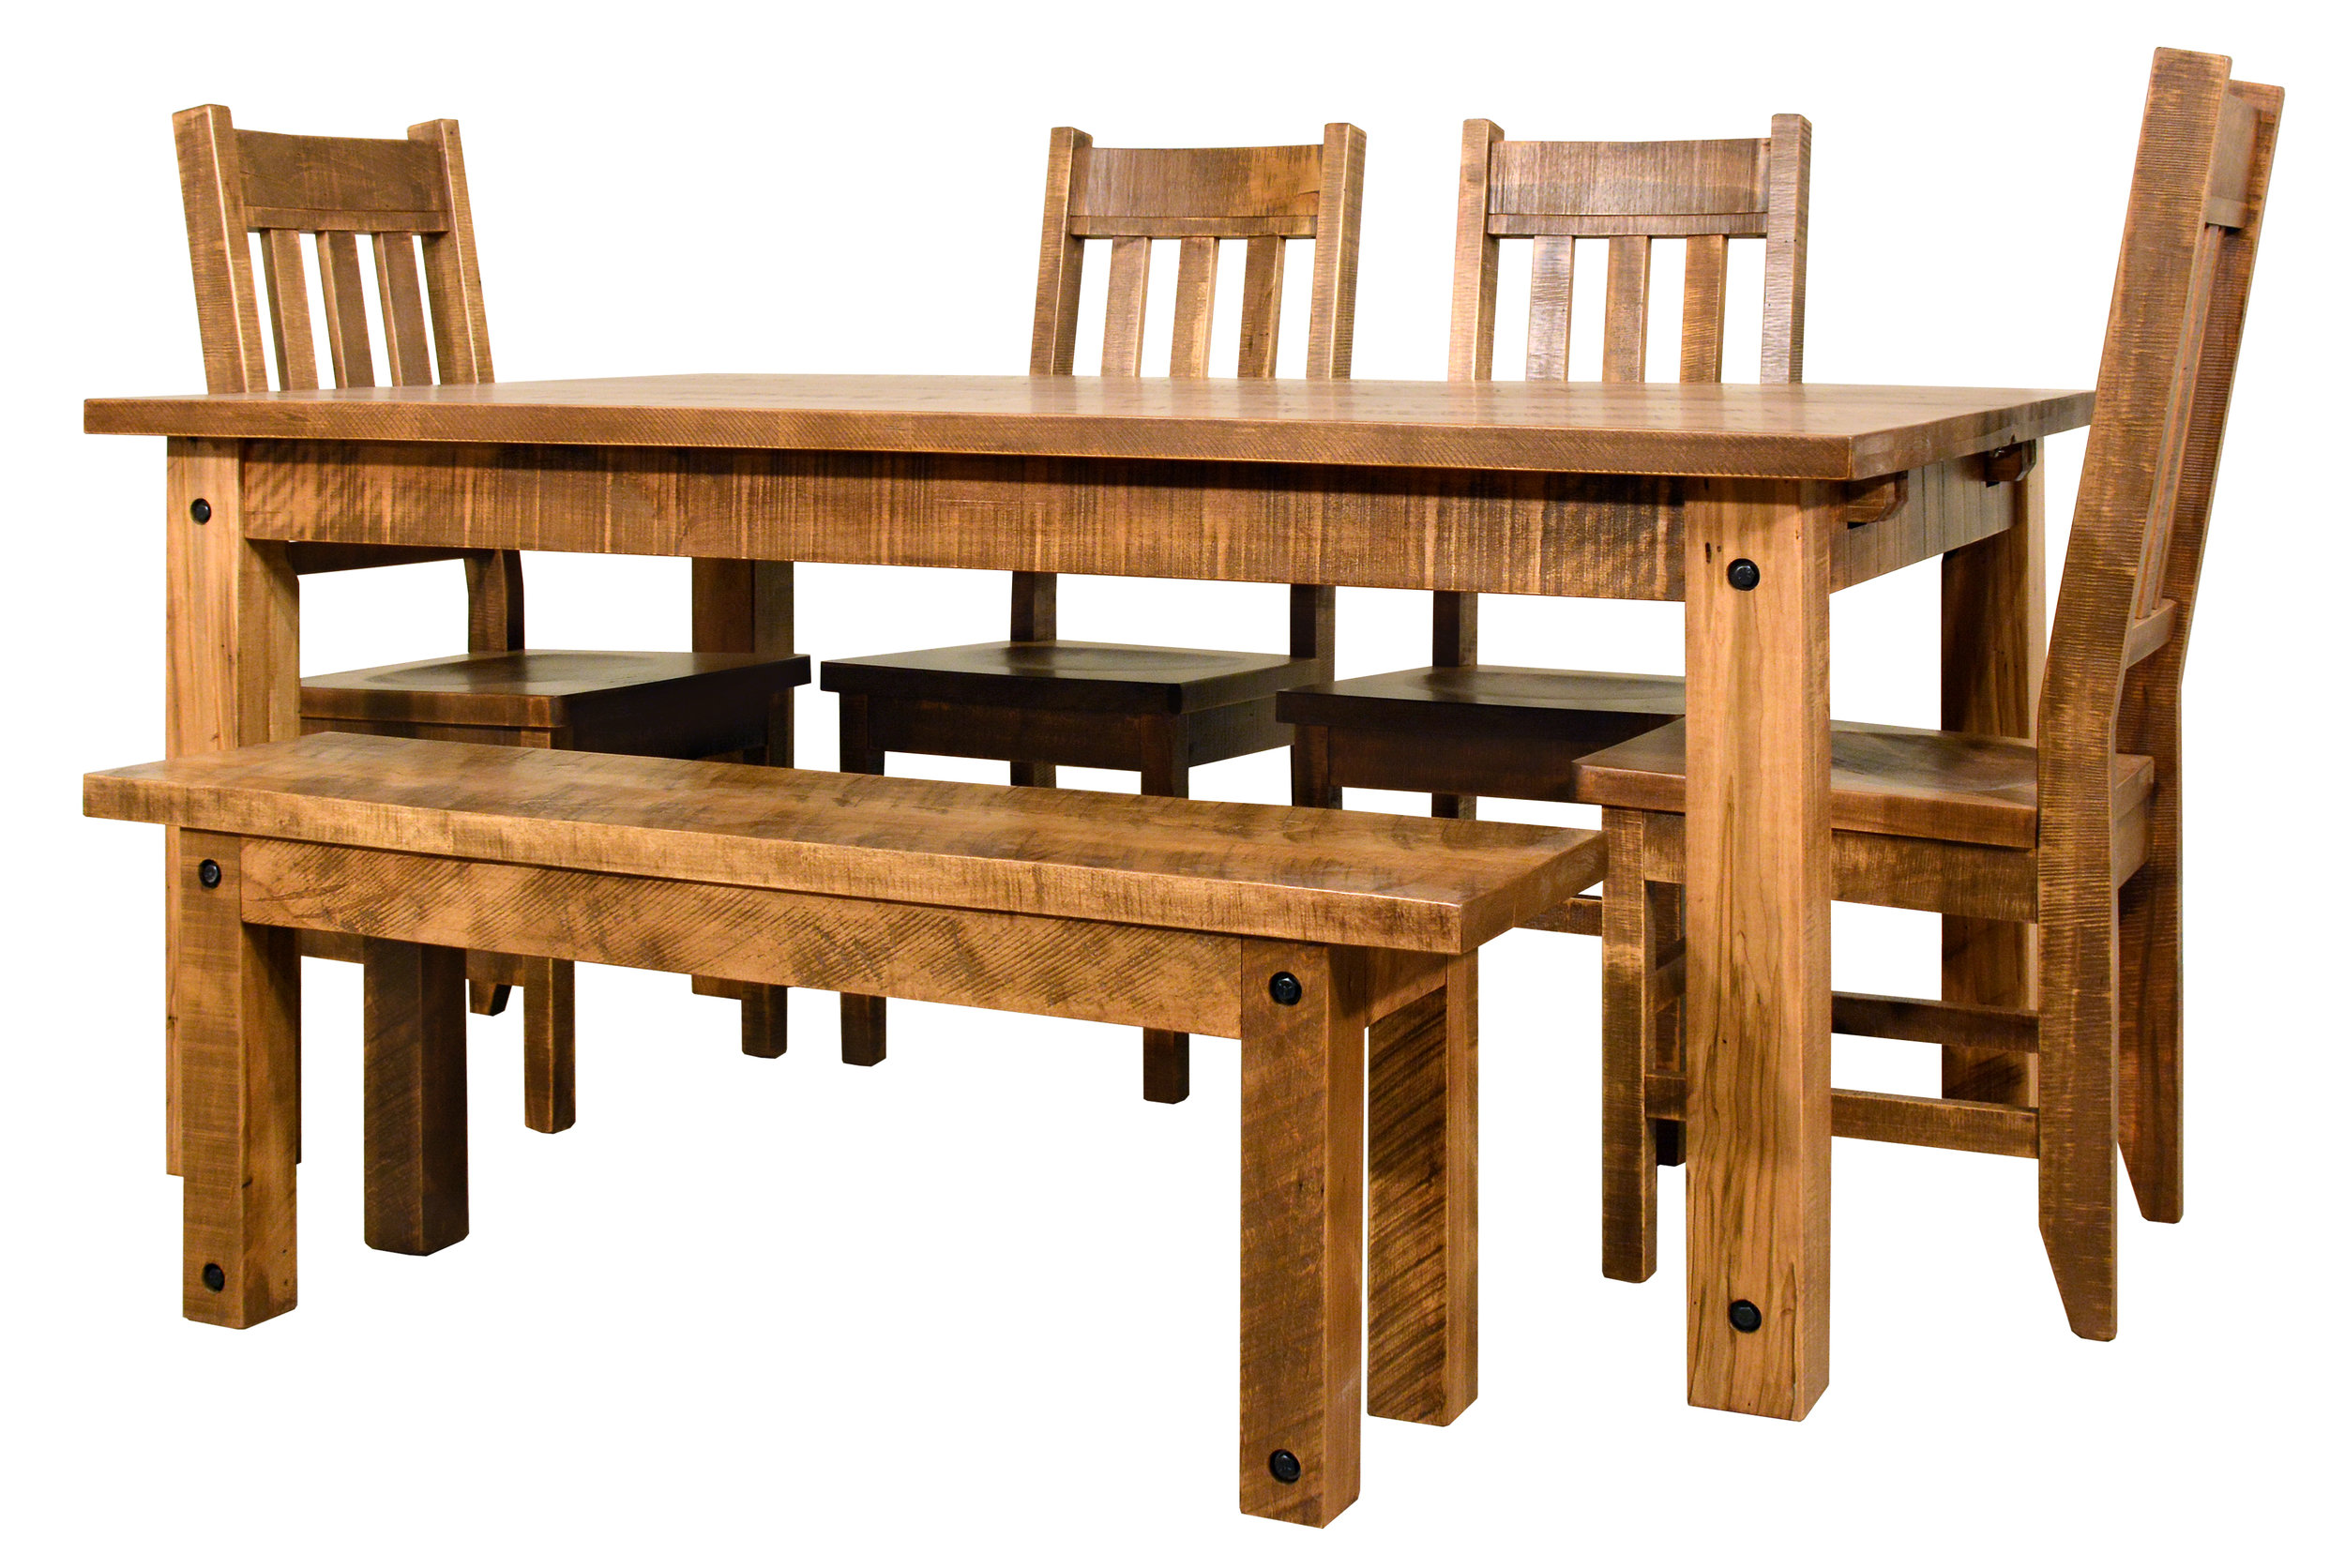 tables and chair sets for sale in Crawberry, Pennsylvania